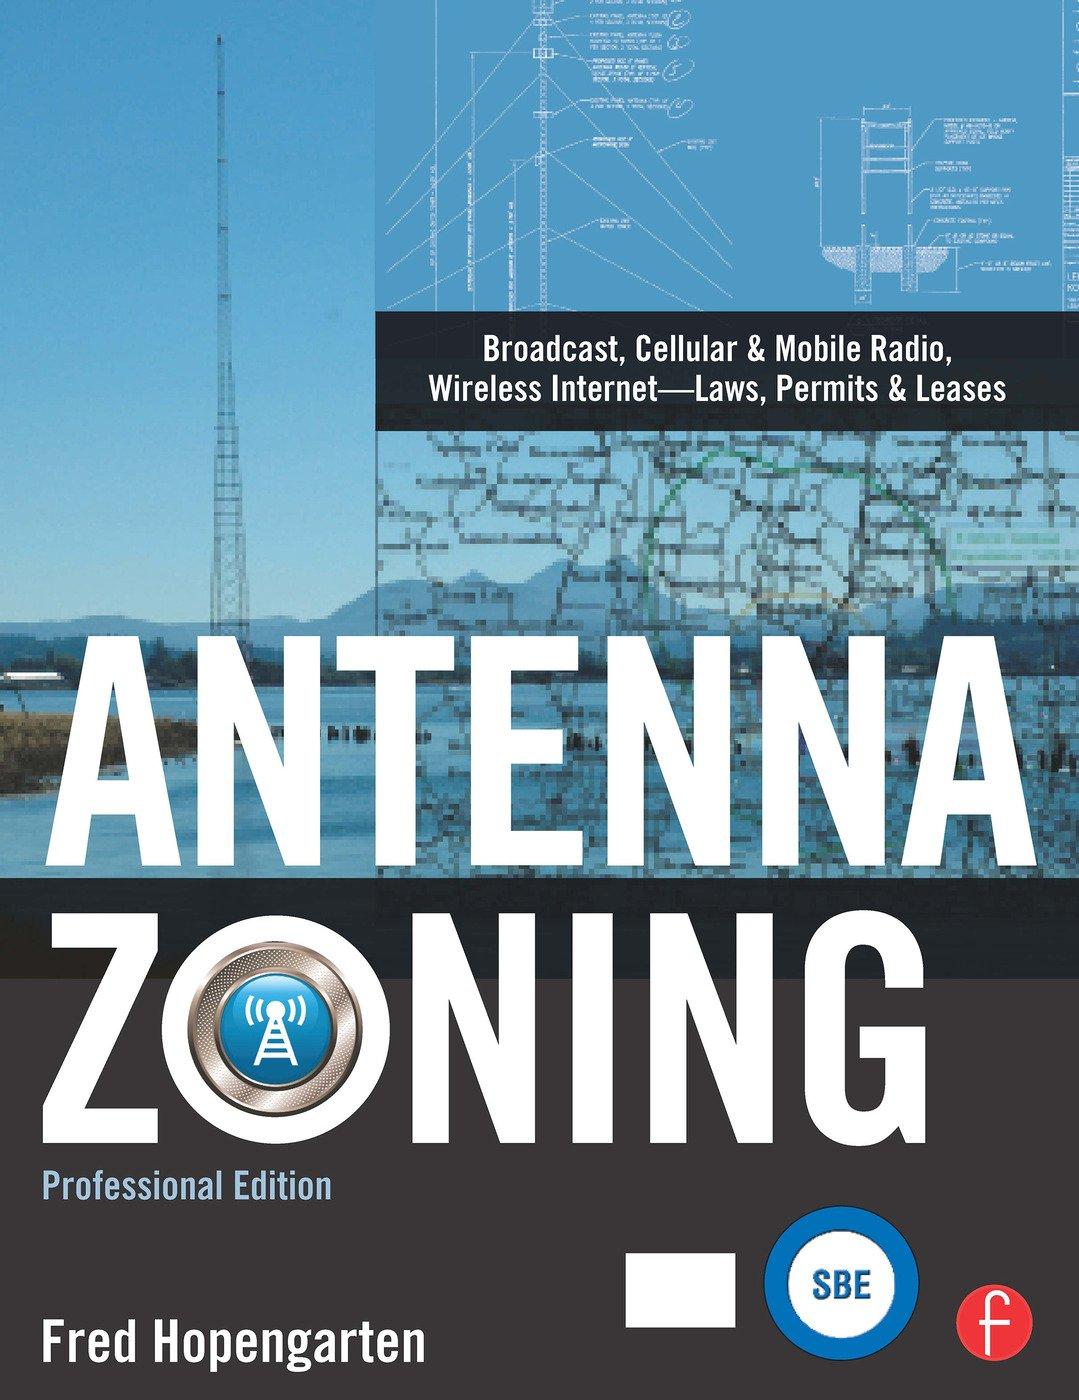 Antenna Zoning: Broadcast, Cellular & Mobile Radio, Wireless Internet- Laws, Permits & Leases book cover